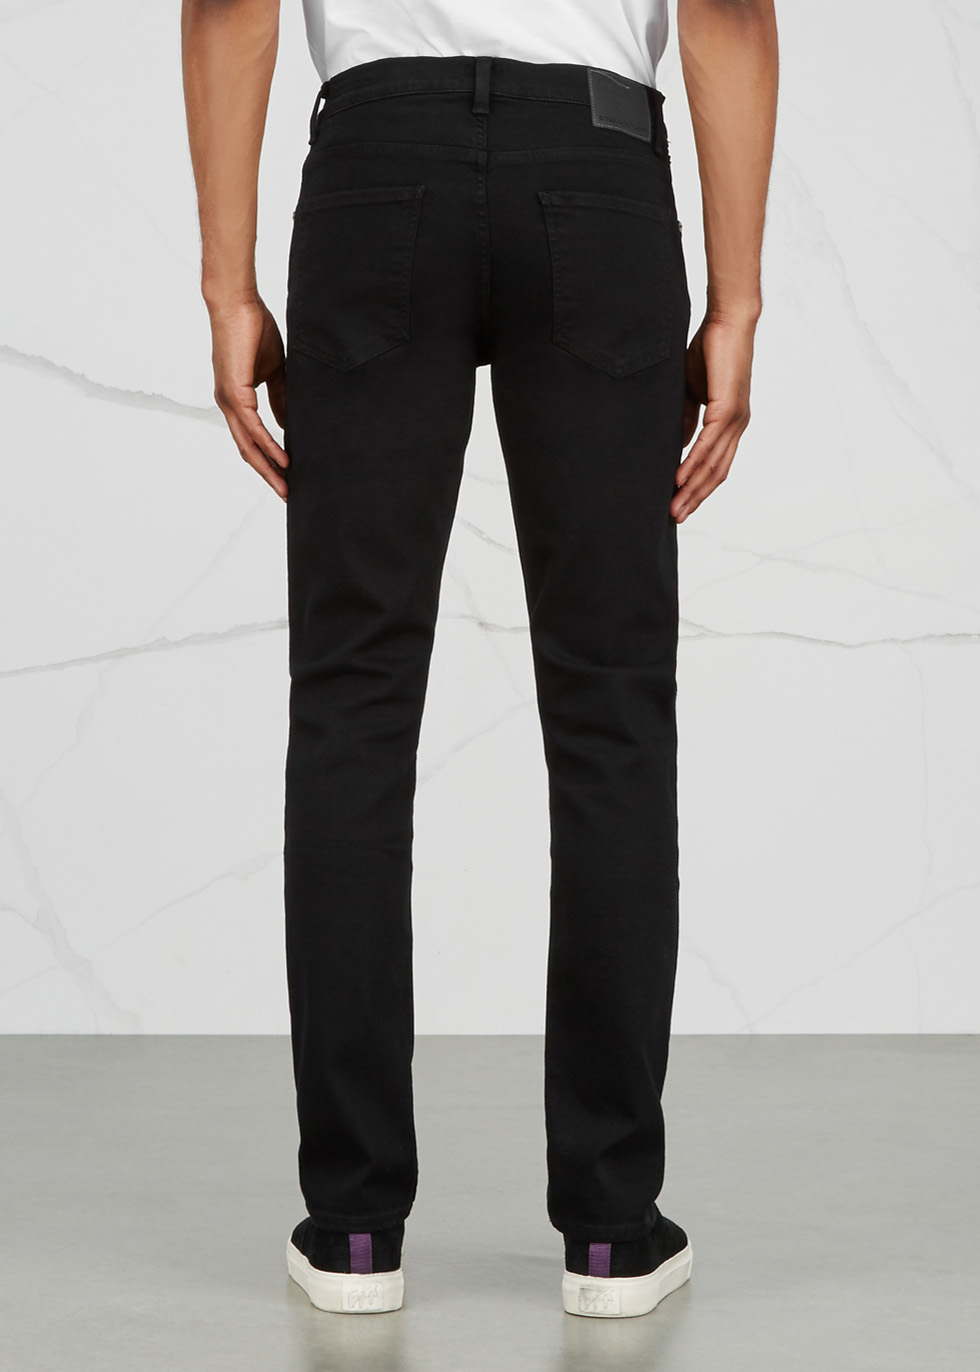 Bowery black slim-leg jeans - Citizens of Humanity